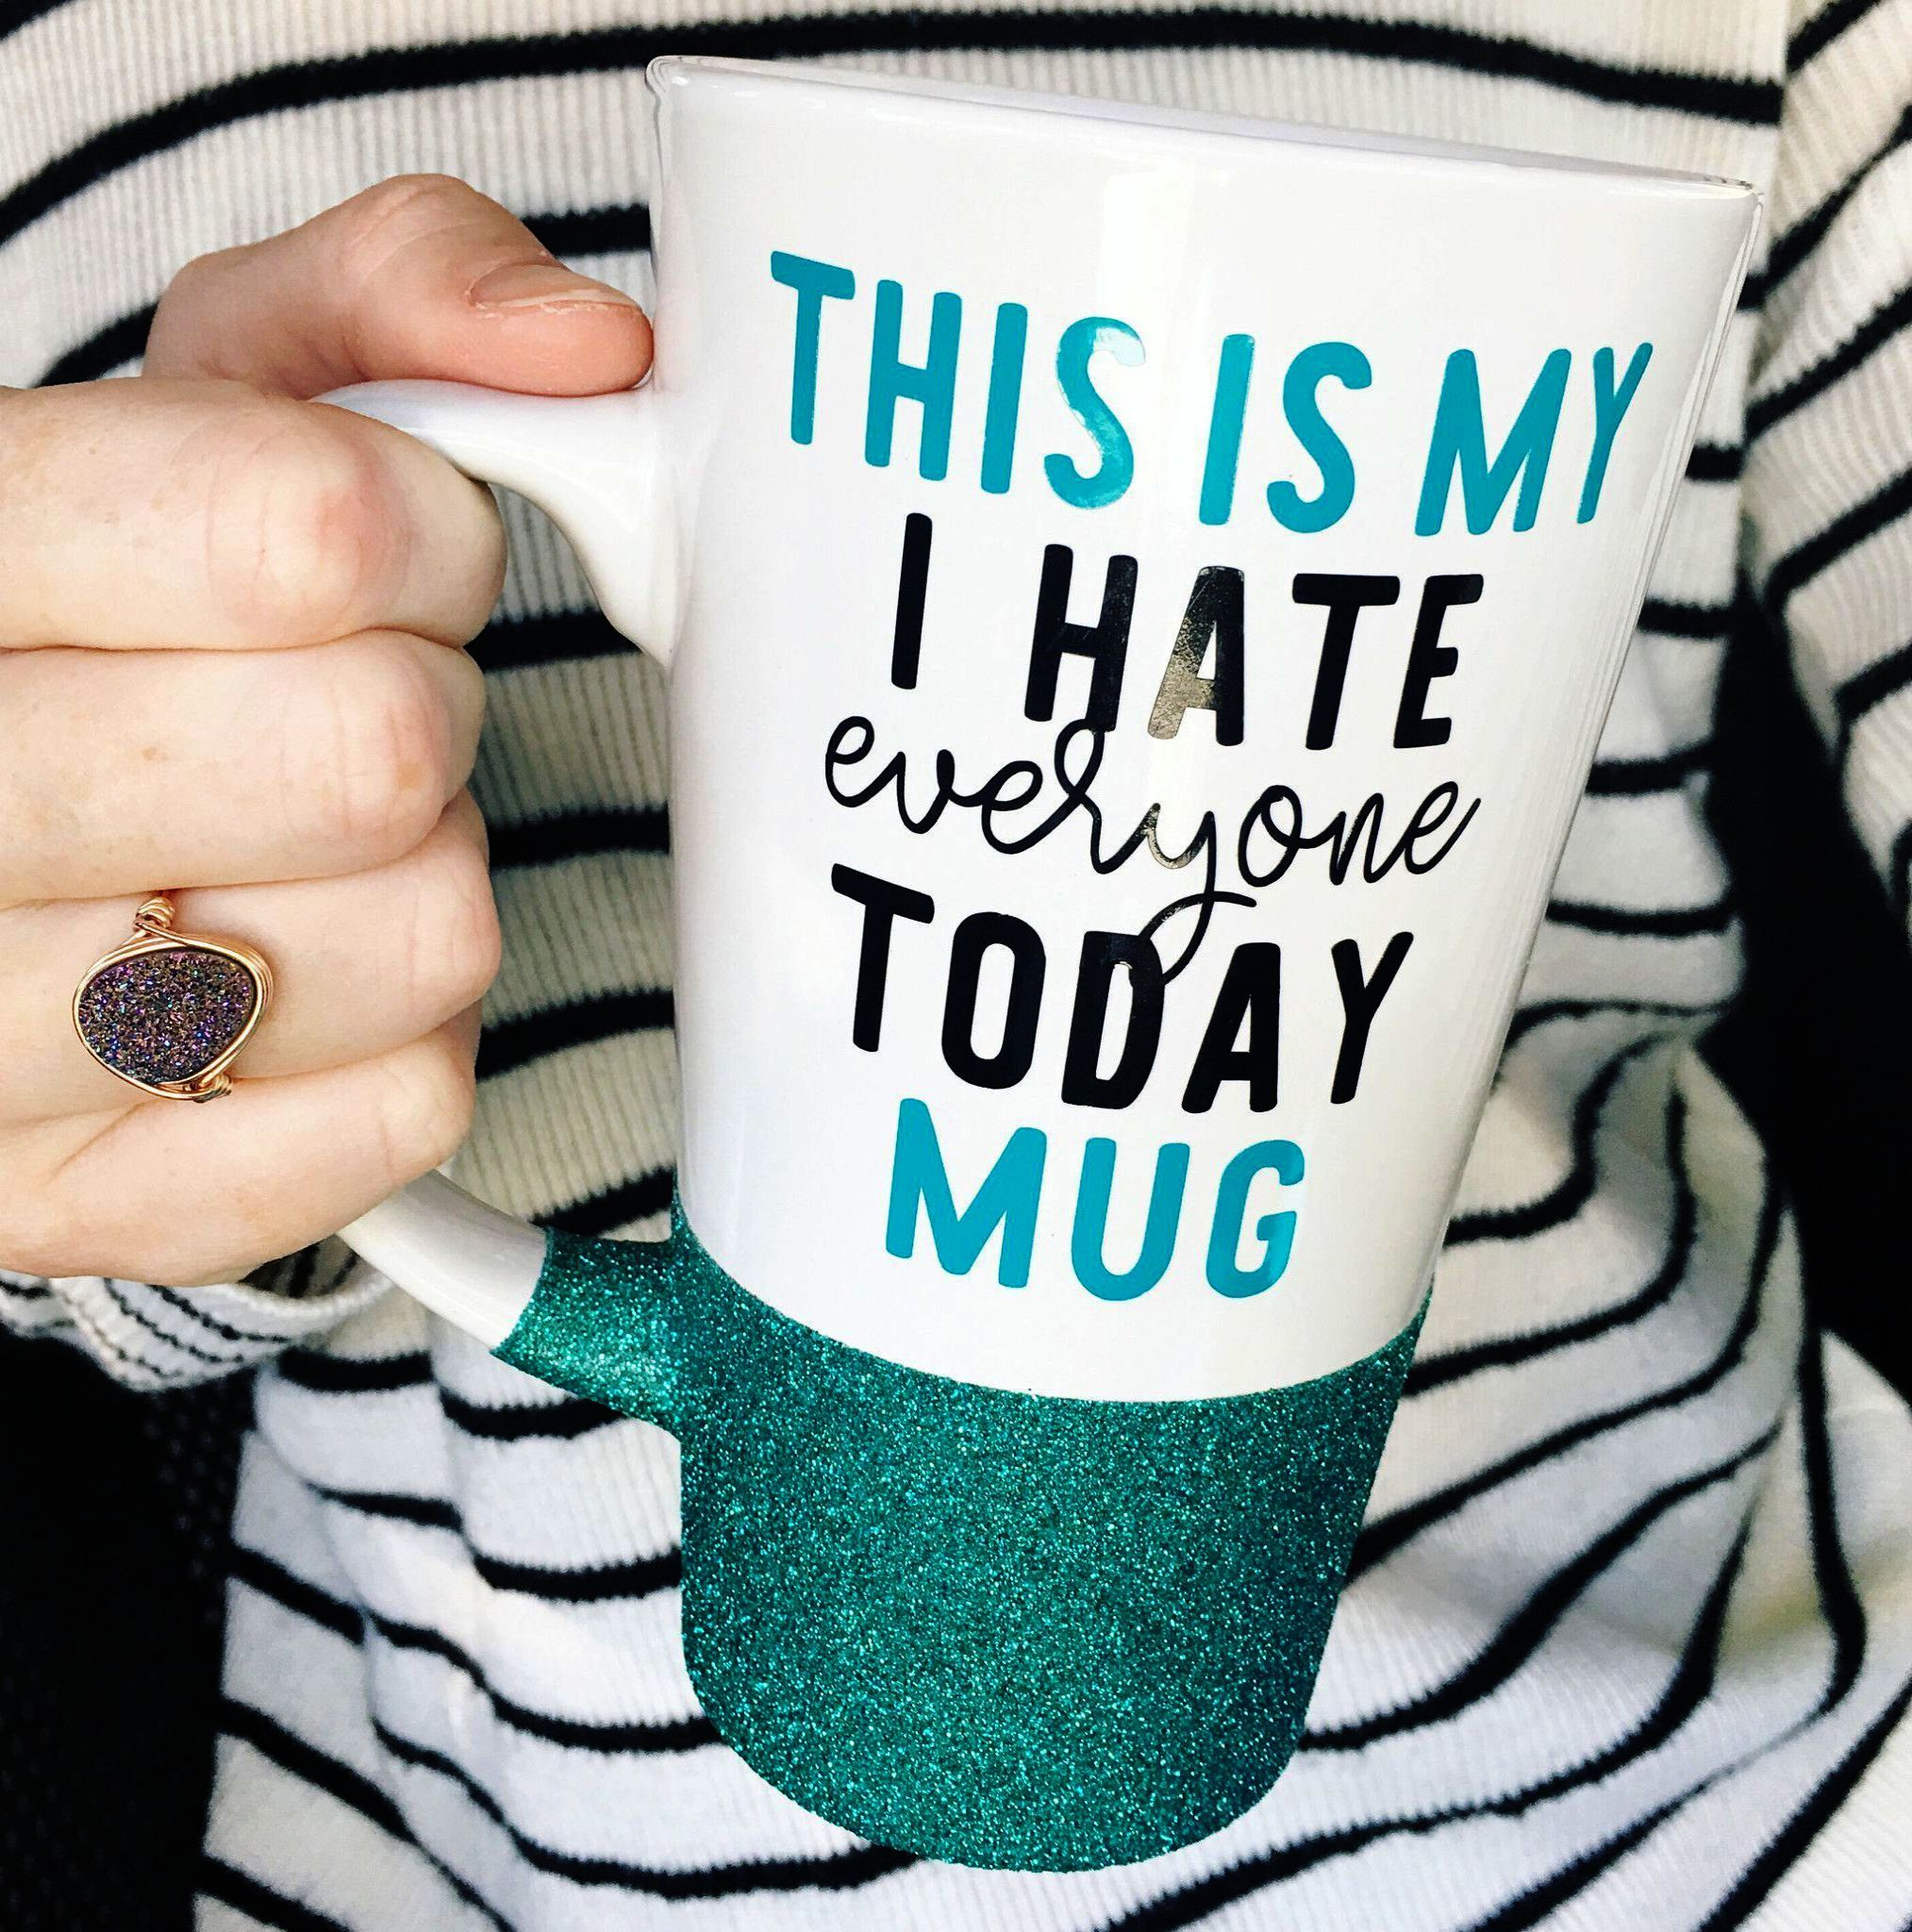 Black Coffee Mugs Amazon Time Coffee Shops Near Me With Parking Out Coffee Cup Holder Pram Mugs Coffee Mugs Coffee Cups